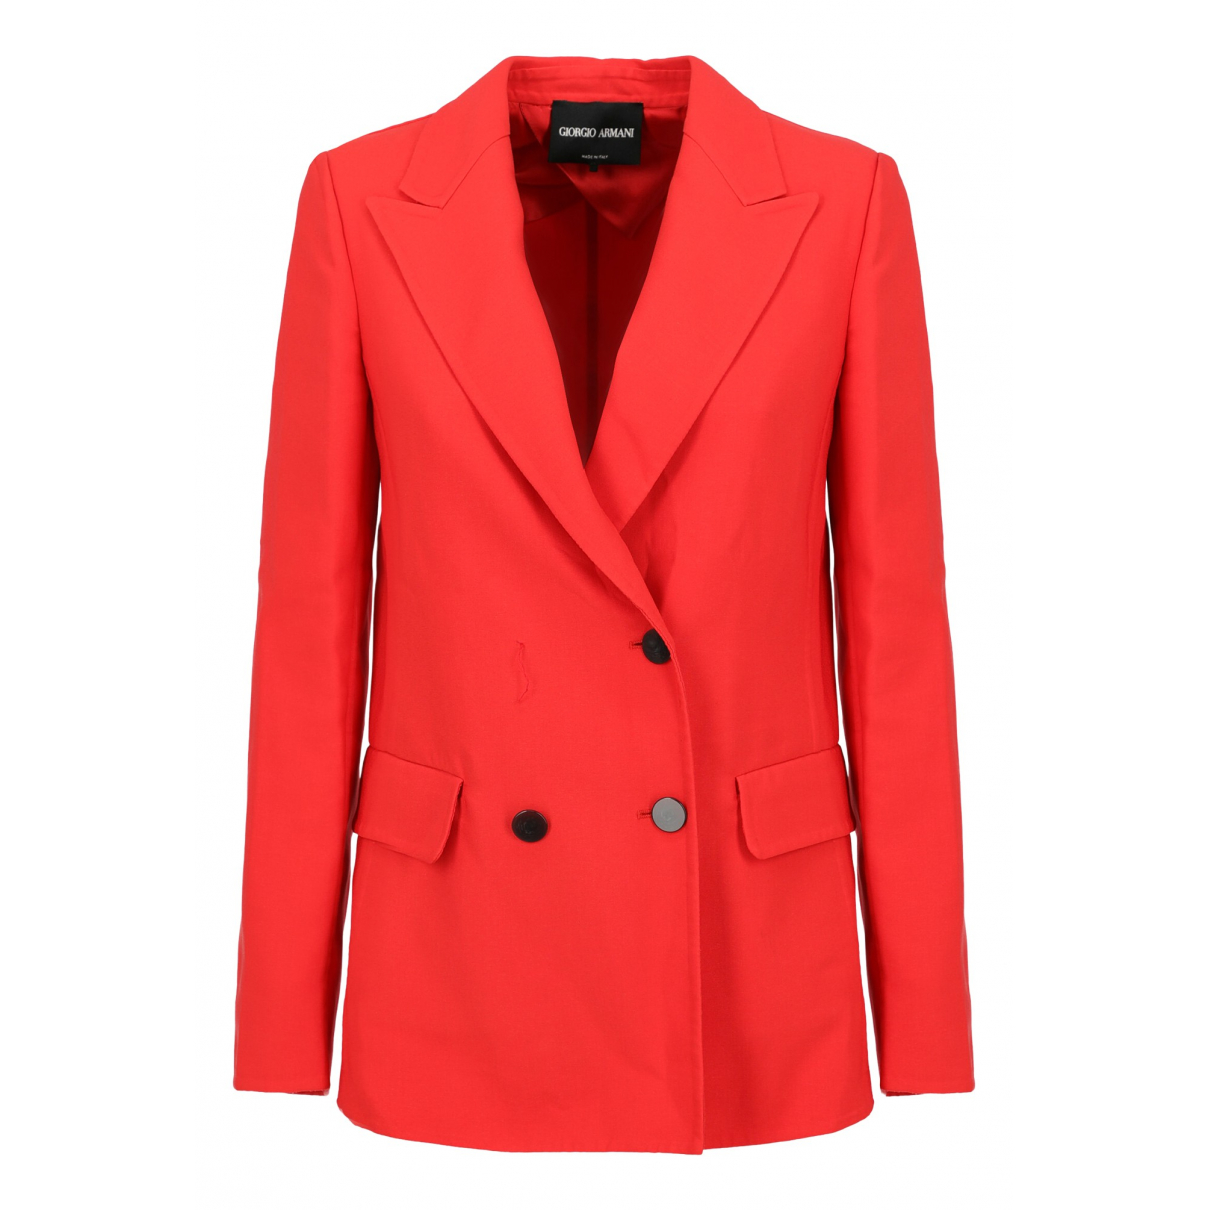 Giorgio Armani N Red Cotton jacket for Women 40 IT